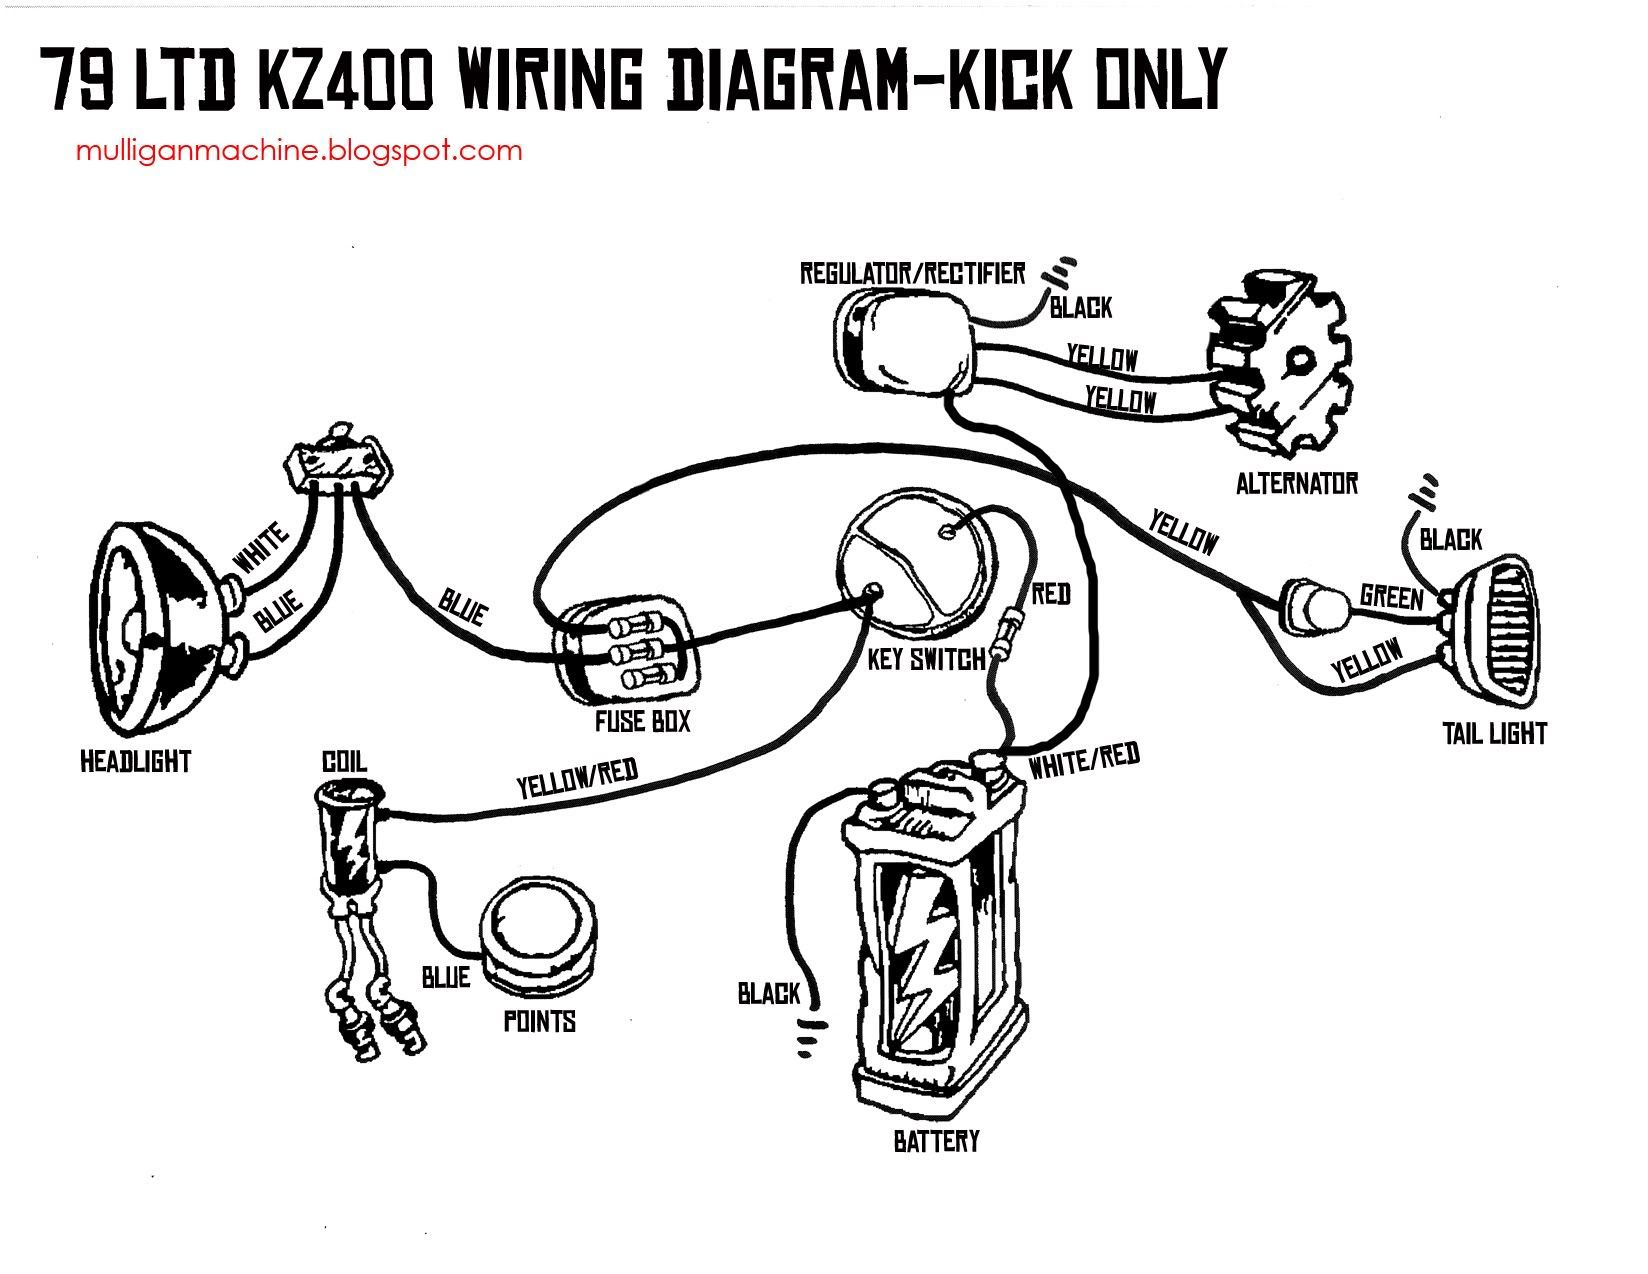 Kick only wiring diagram